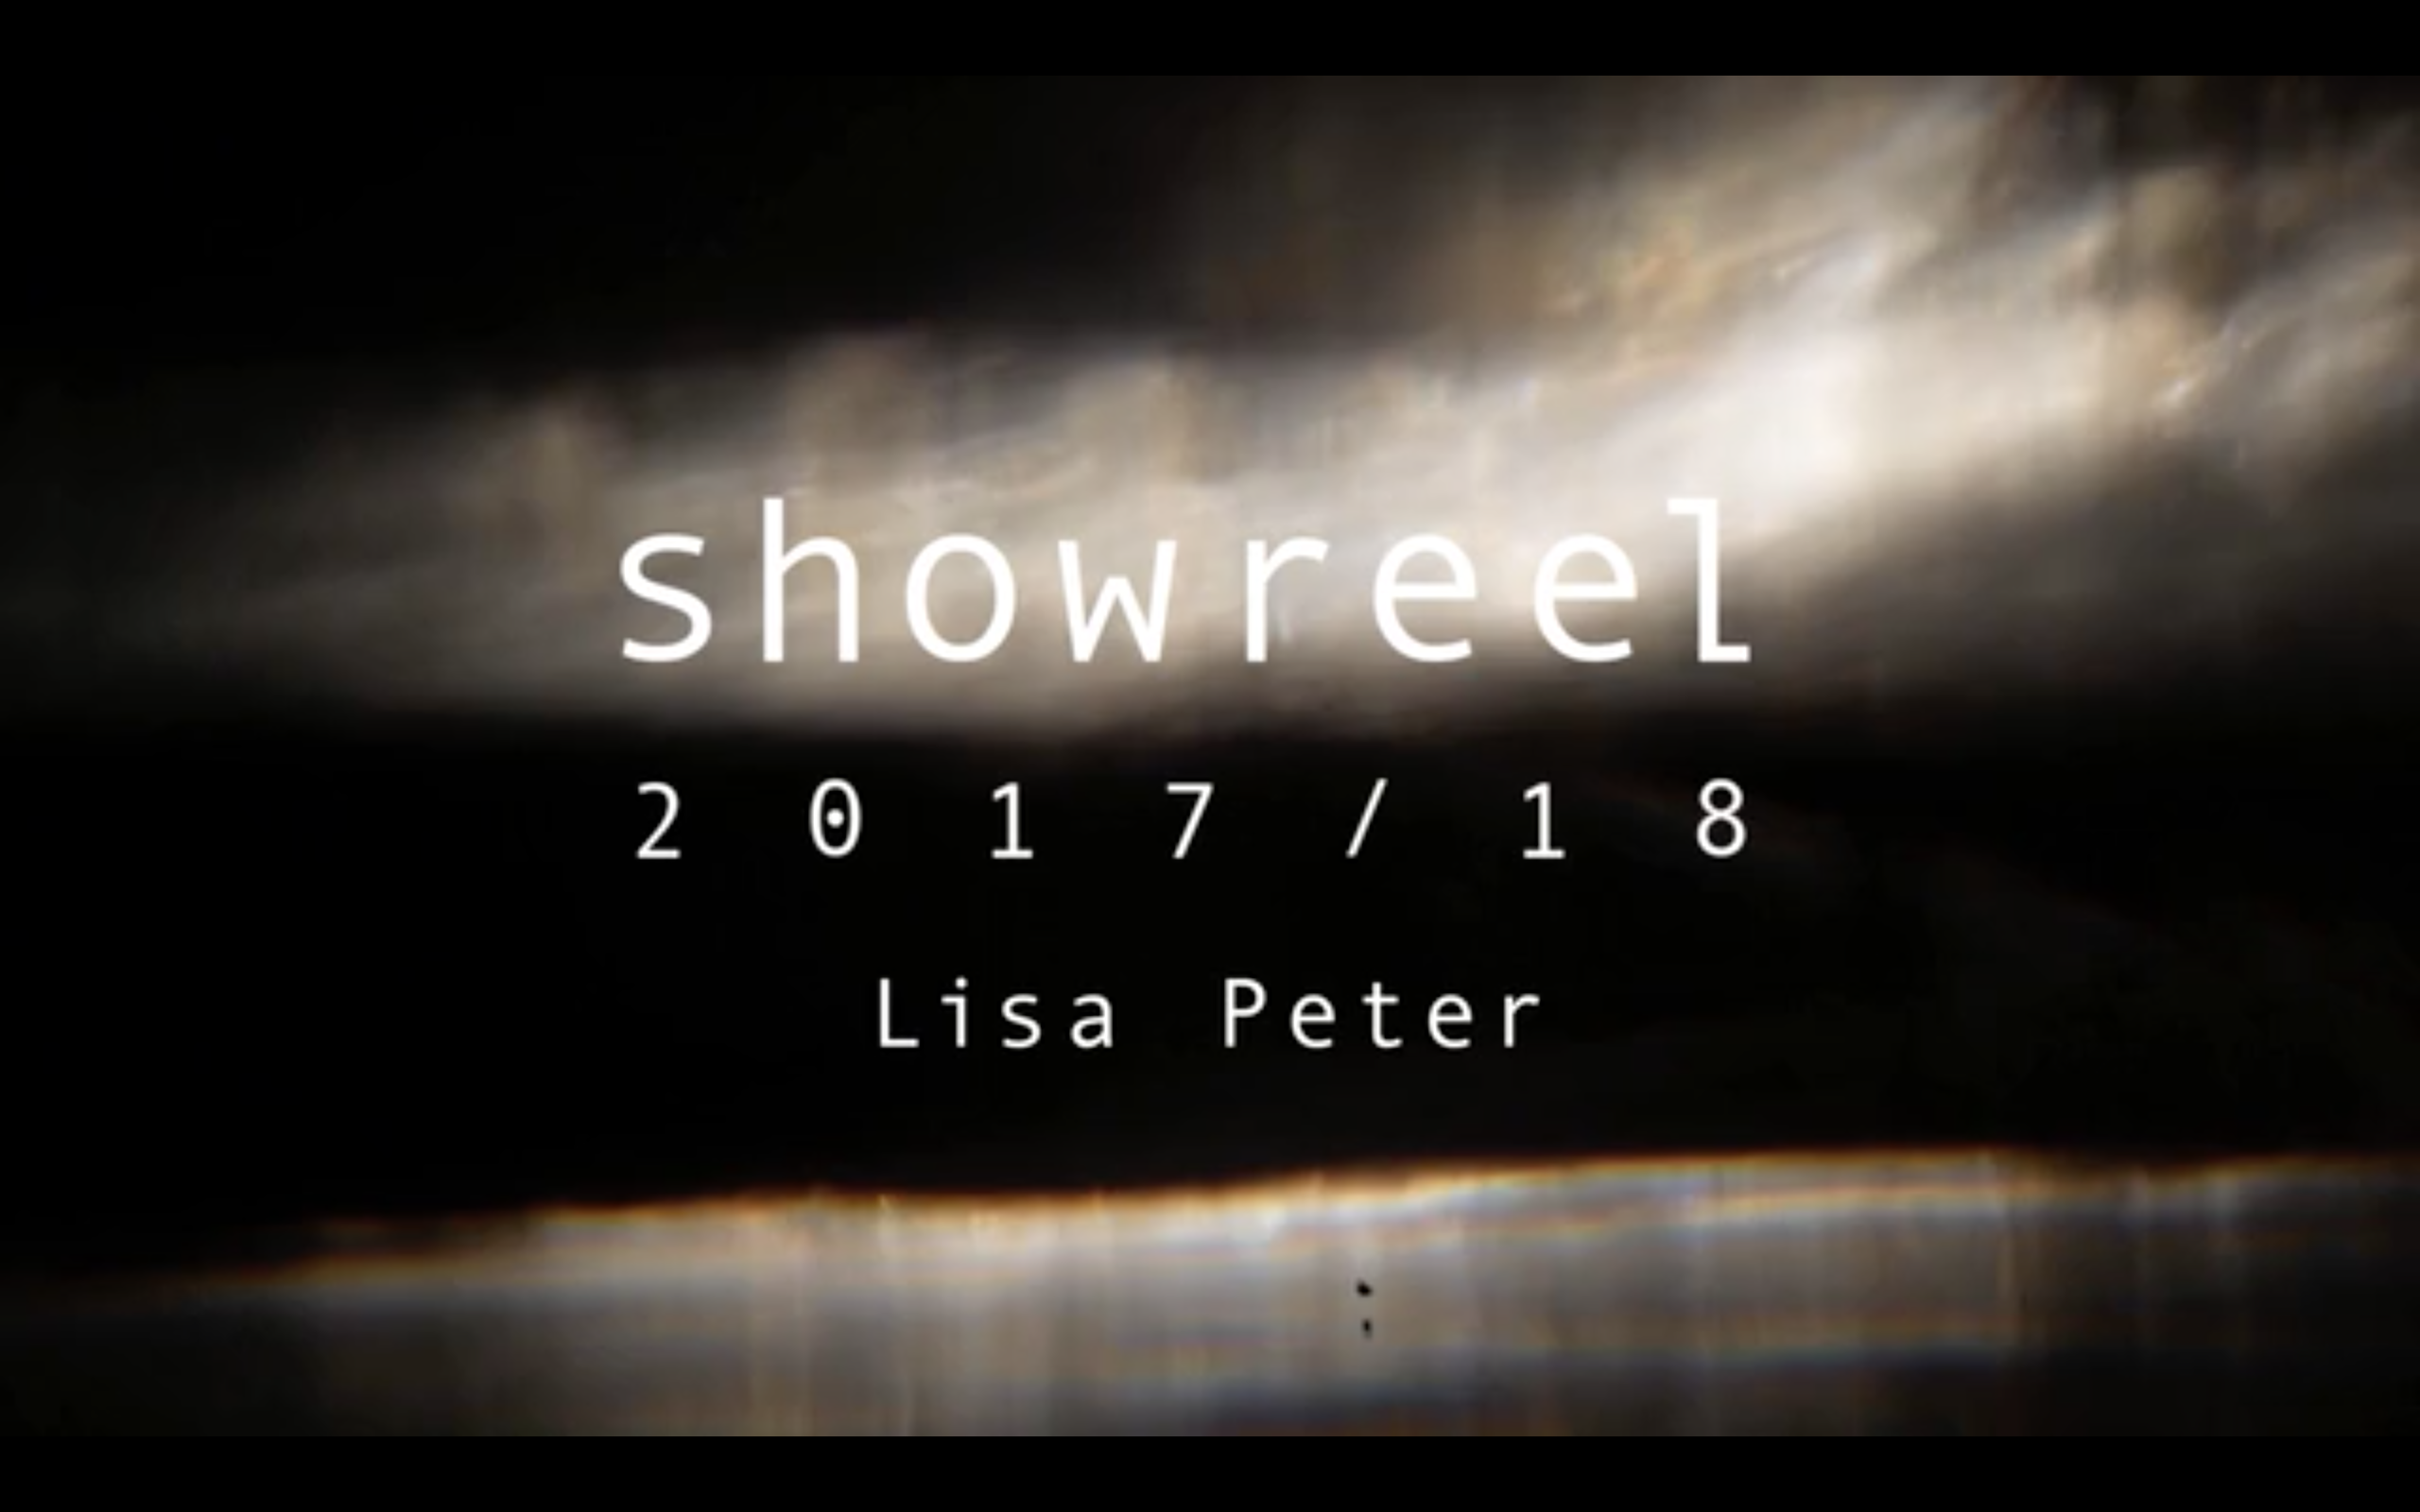 showreel lisa peter